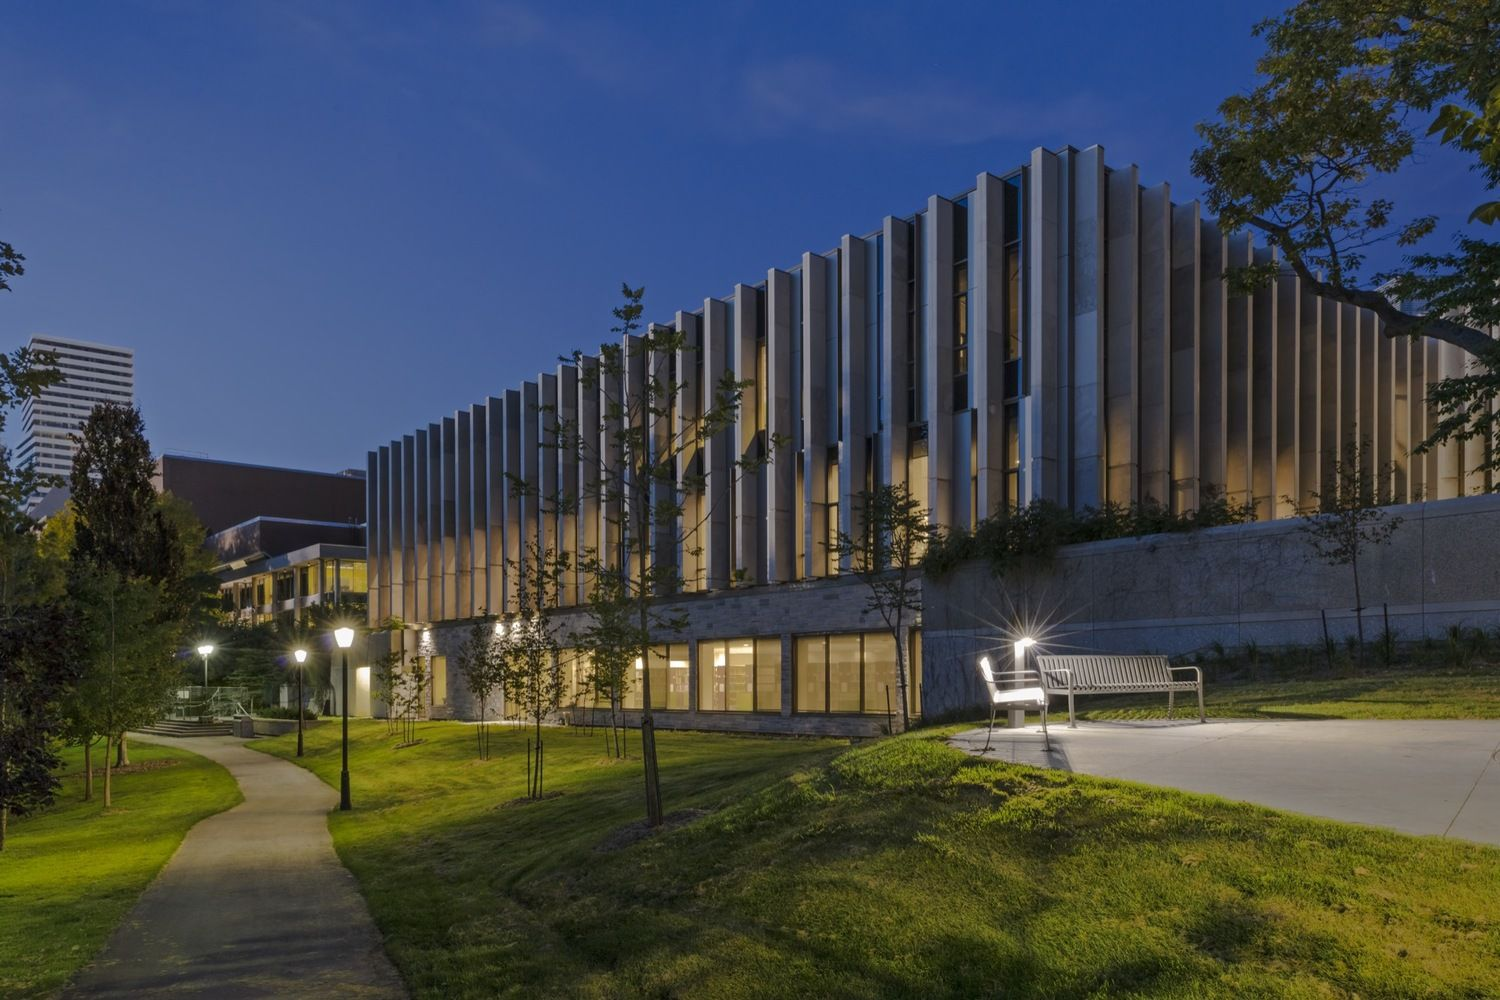 Gallery of University of Toronto Faculty of Law, Jackman